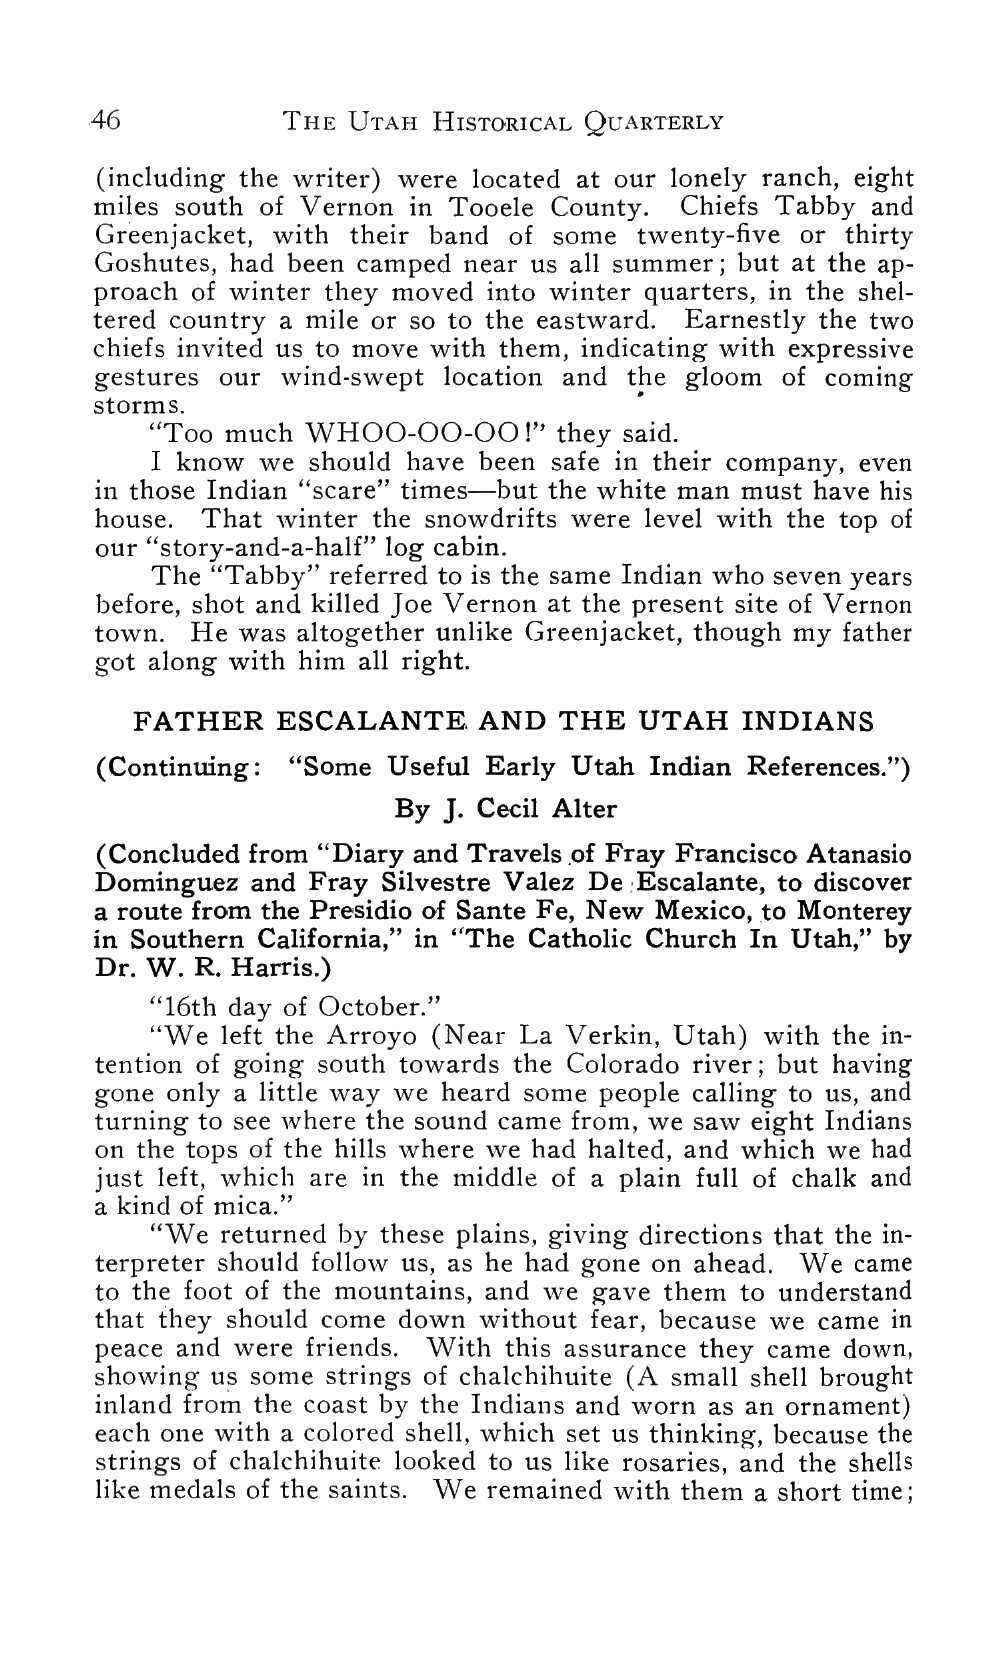 Page 48 of Father Escalante and the Utah Indians